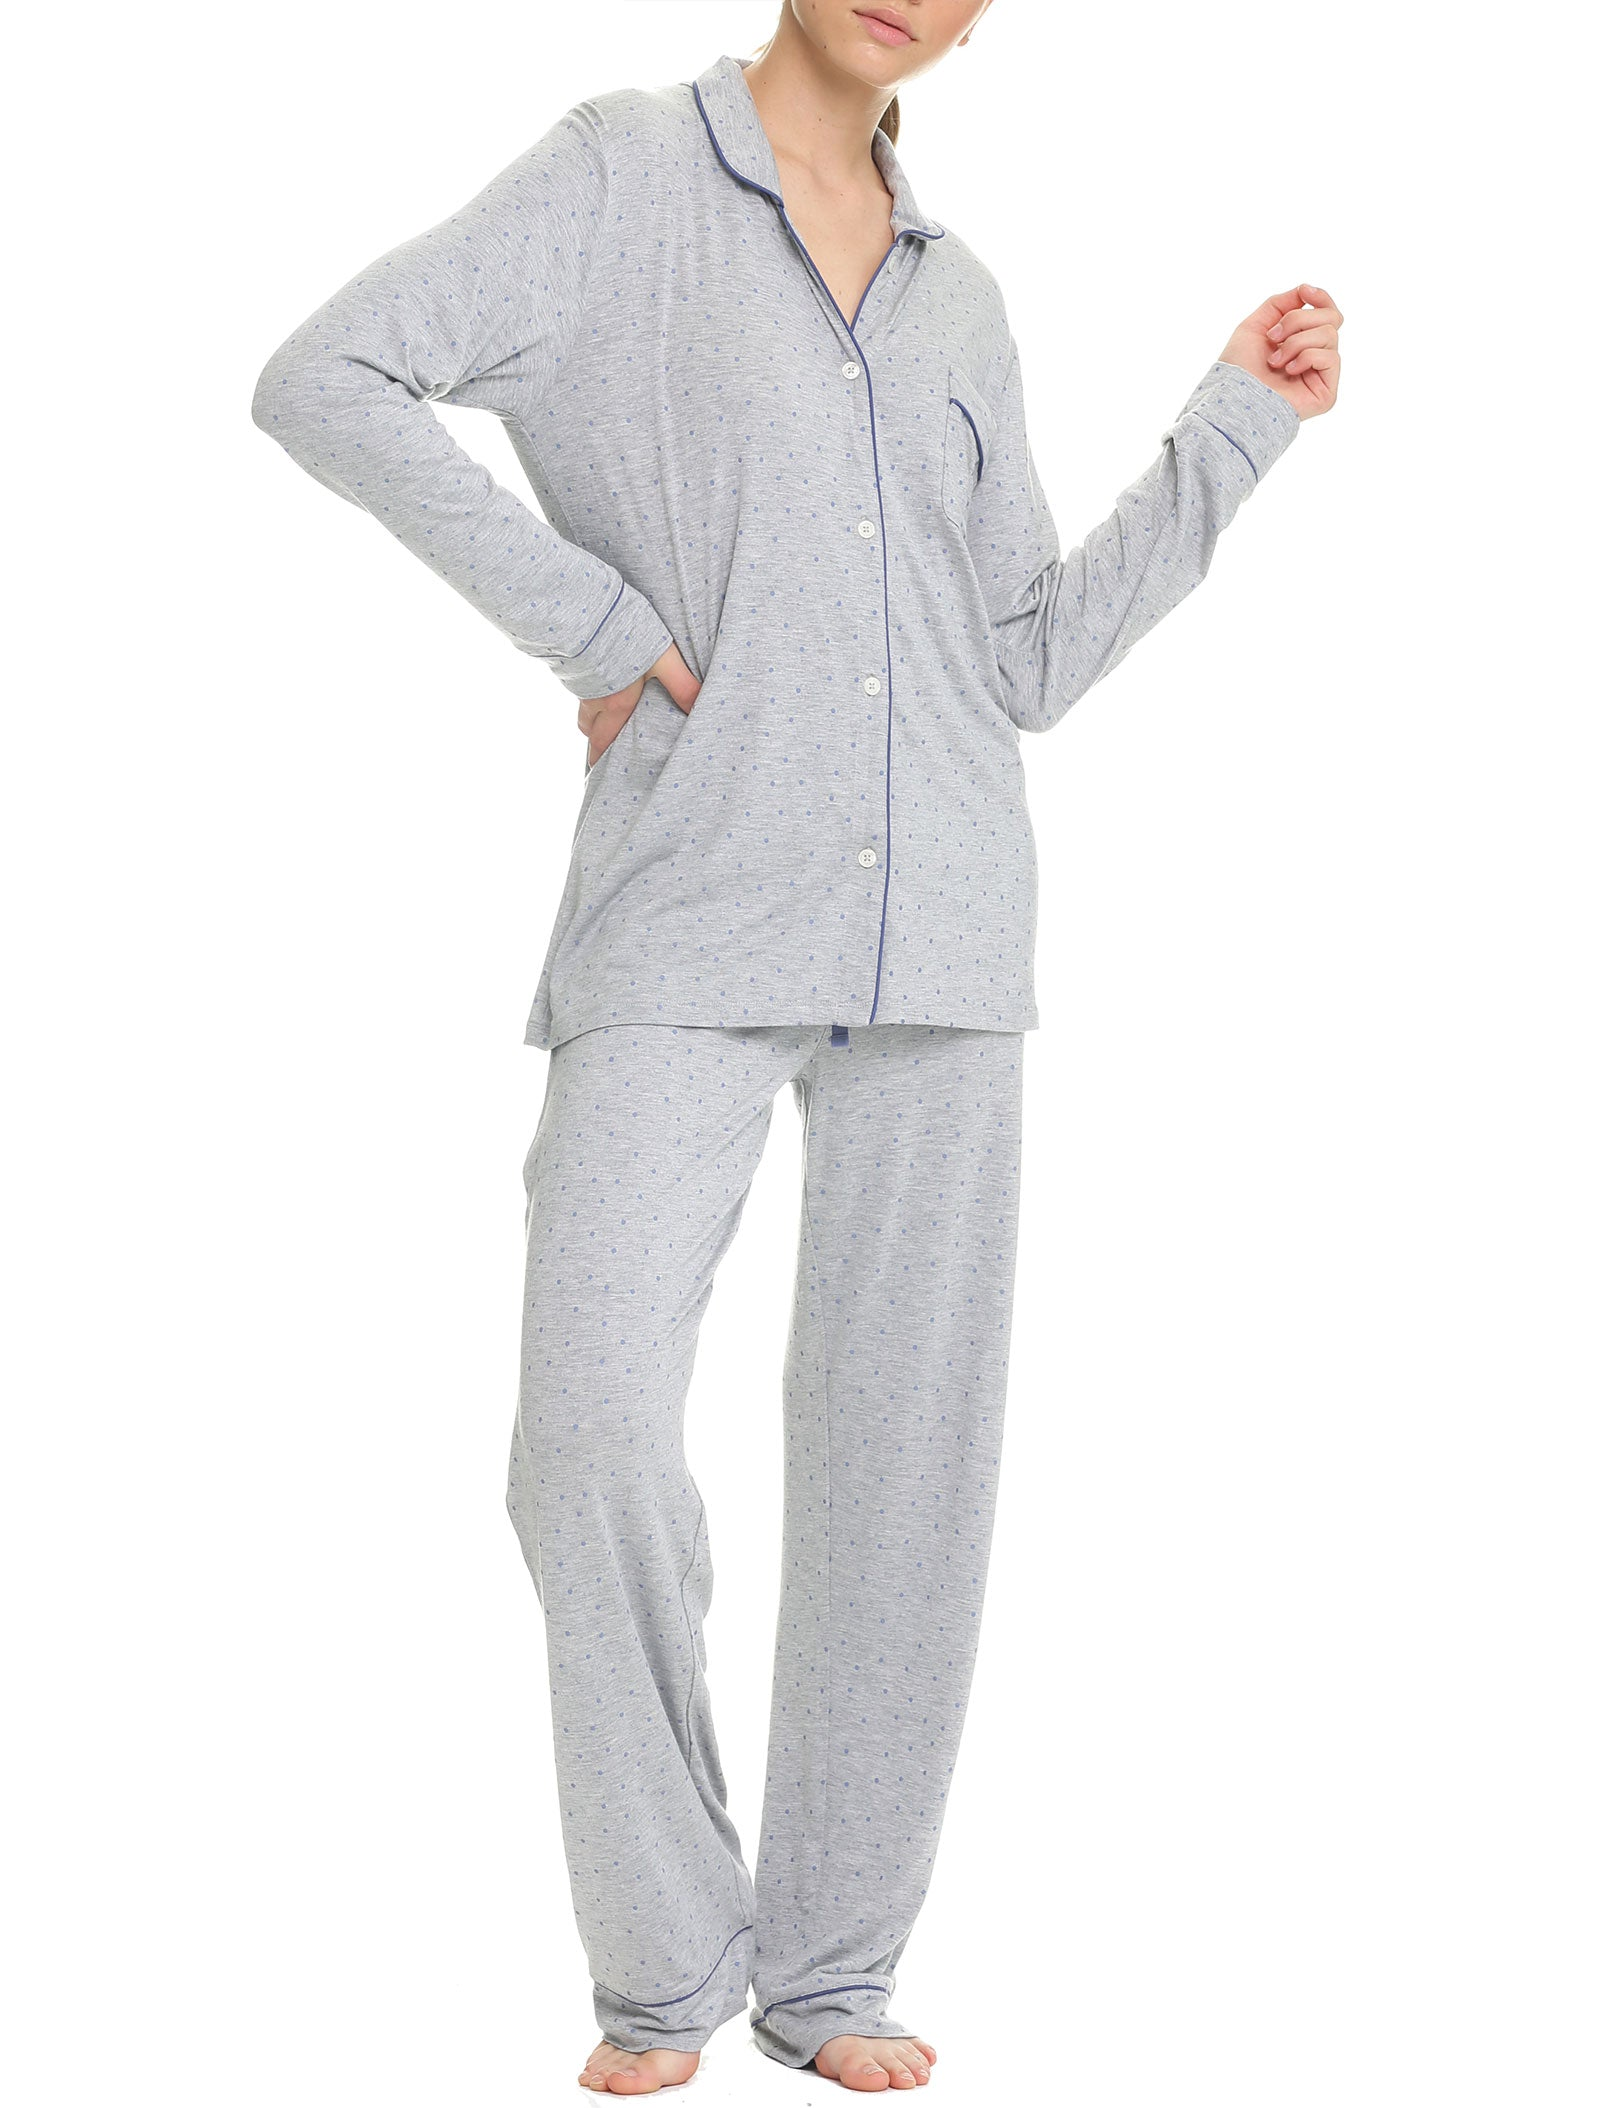 Indigo Spot Modal Soft Kate Pajama Set